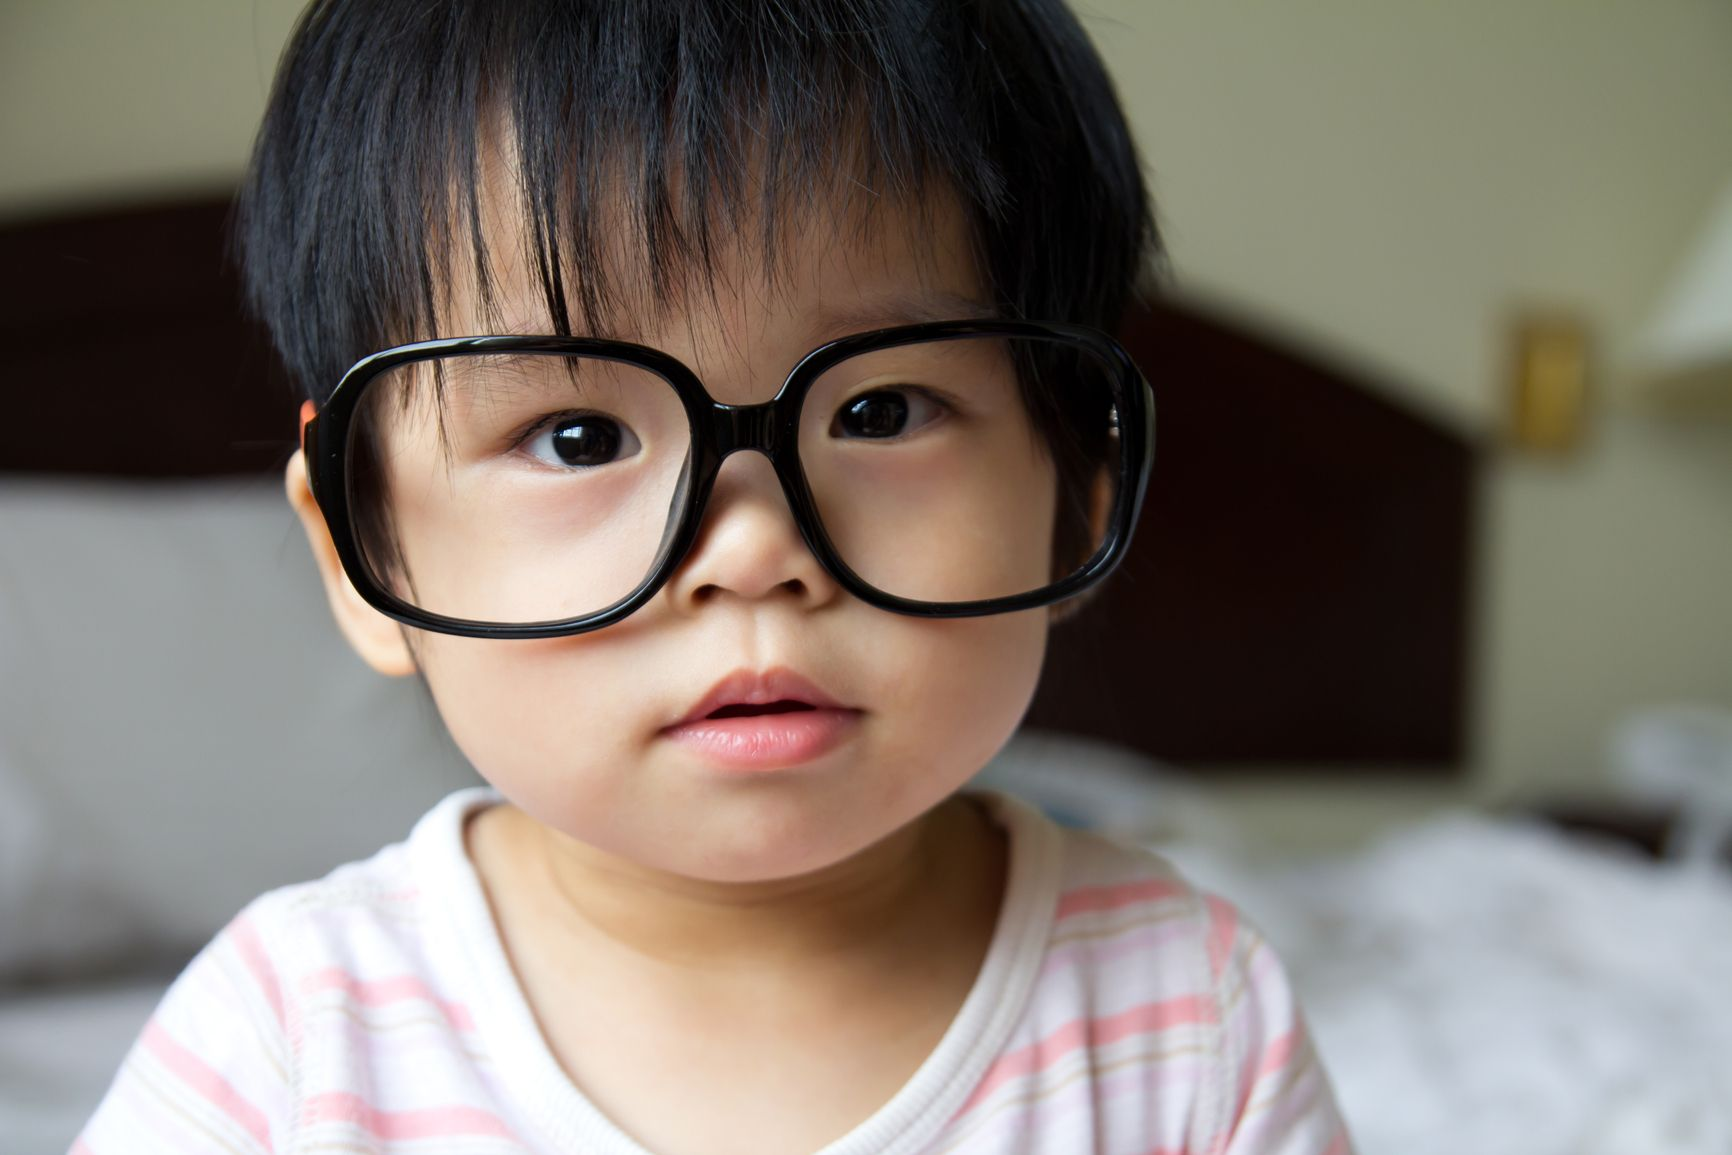 Cute St Petersburg doula baby with glasses